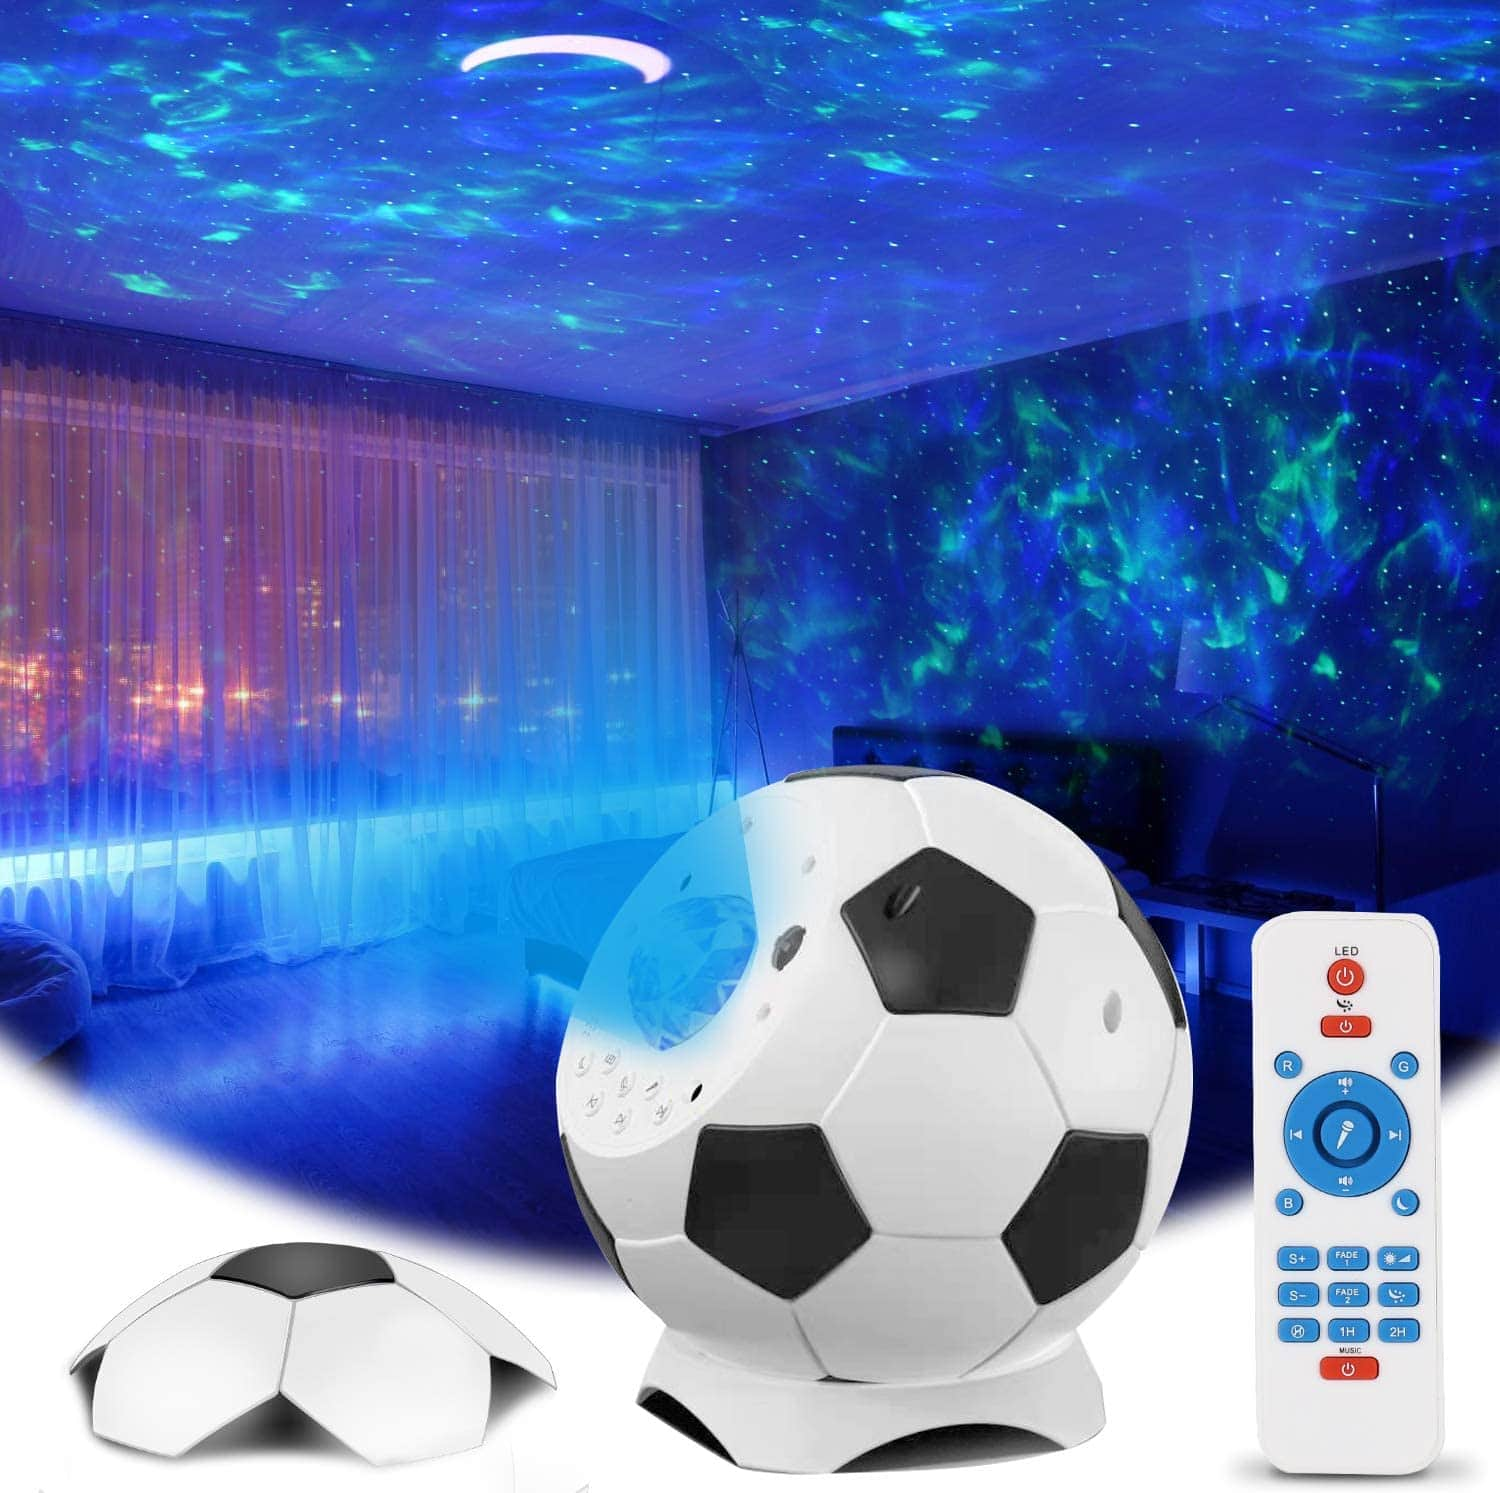 Projector Night Light for Soothing Aurora Effect $29.97